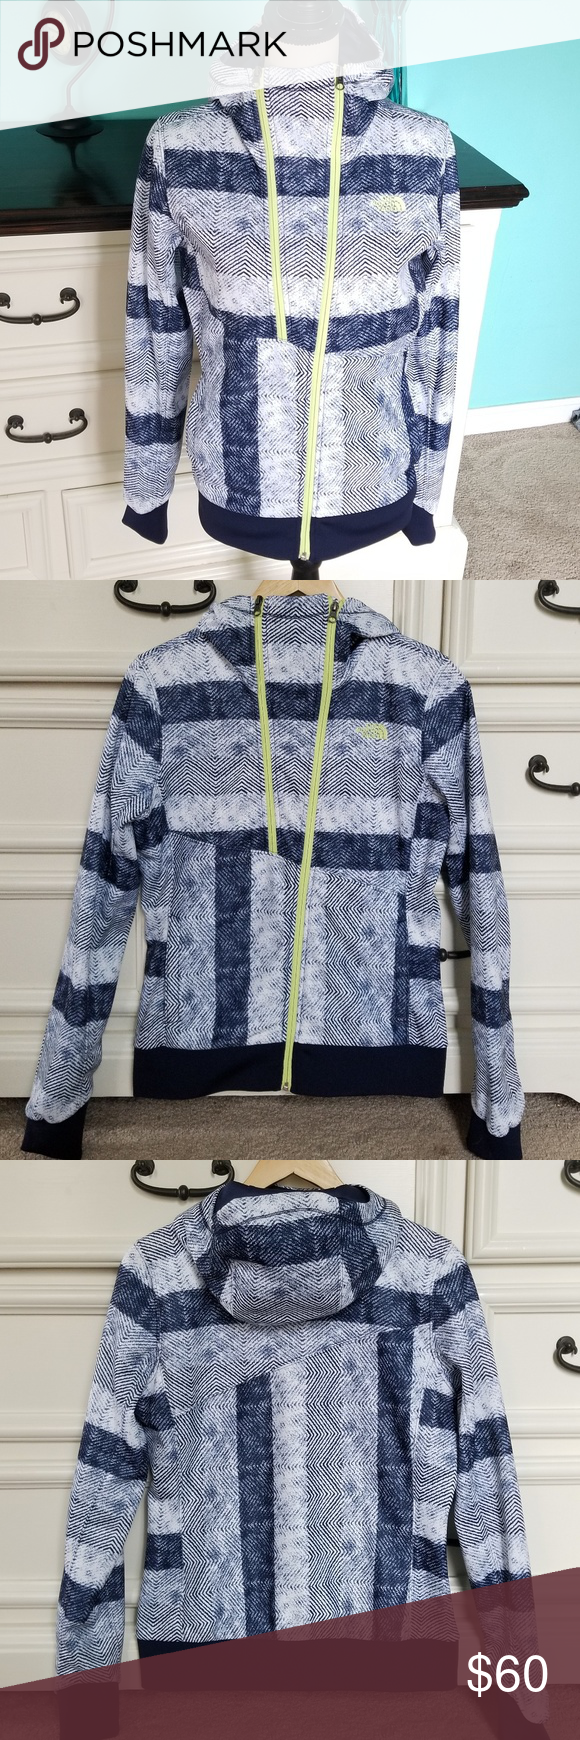 b19614110 💖 The North Face Thatch Hoodie Jacket in 2019 | PoshMark | Fashion ...